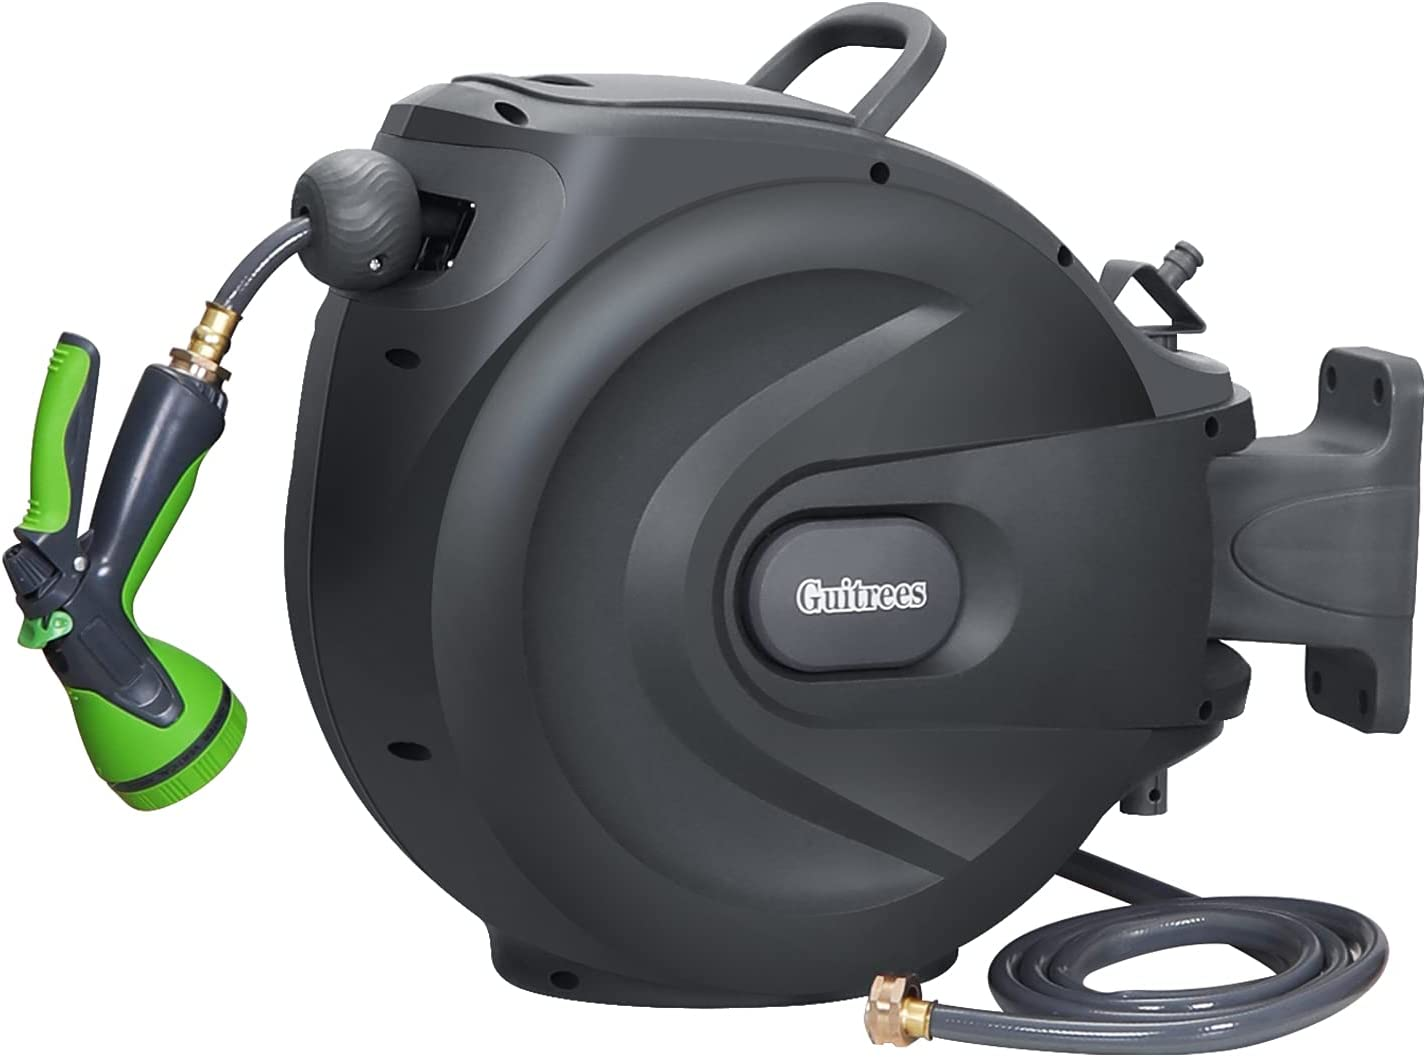 """Guitrees Retractable Garden Hose Reel 1/2"""" 100FT+6FT, Slow Return System, Any Length Lock, Wall Mounted, 9 Function Nozzle and 180°Swivel Bracket (Grey)"""